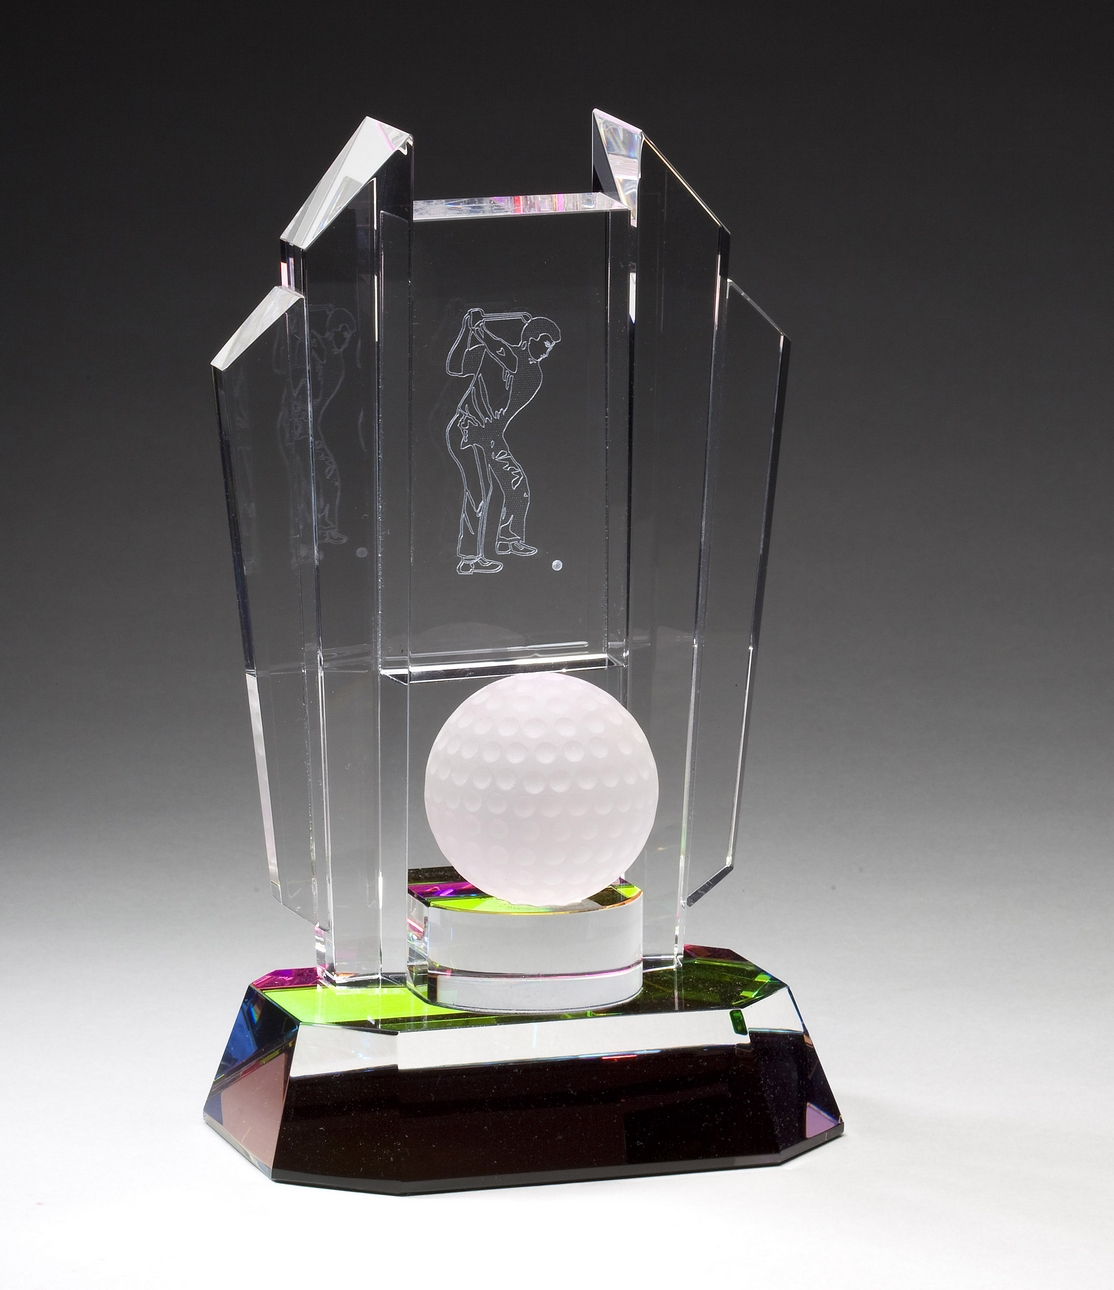 "Optical Crystal with Frosted Golf Ball    Large:  CRY356 - 8.5"" tall x 4.5"" wide -  $102    Medium:  CRY355 - 7.5"" tall x 4"" wide -  $87    Small:  CRY354 - 6"" tall x 3.5"" wide -  $81"